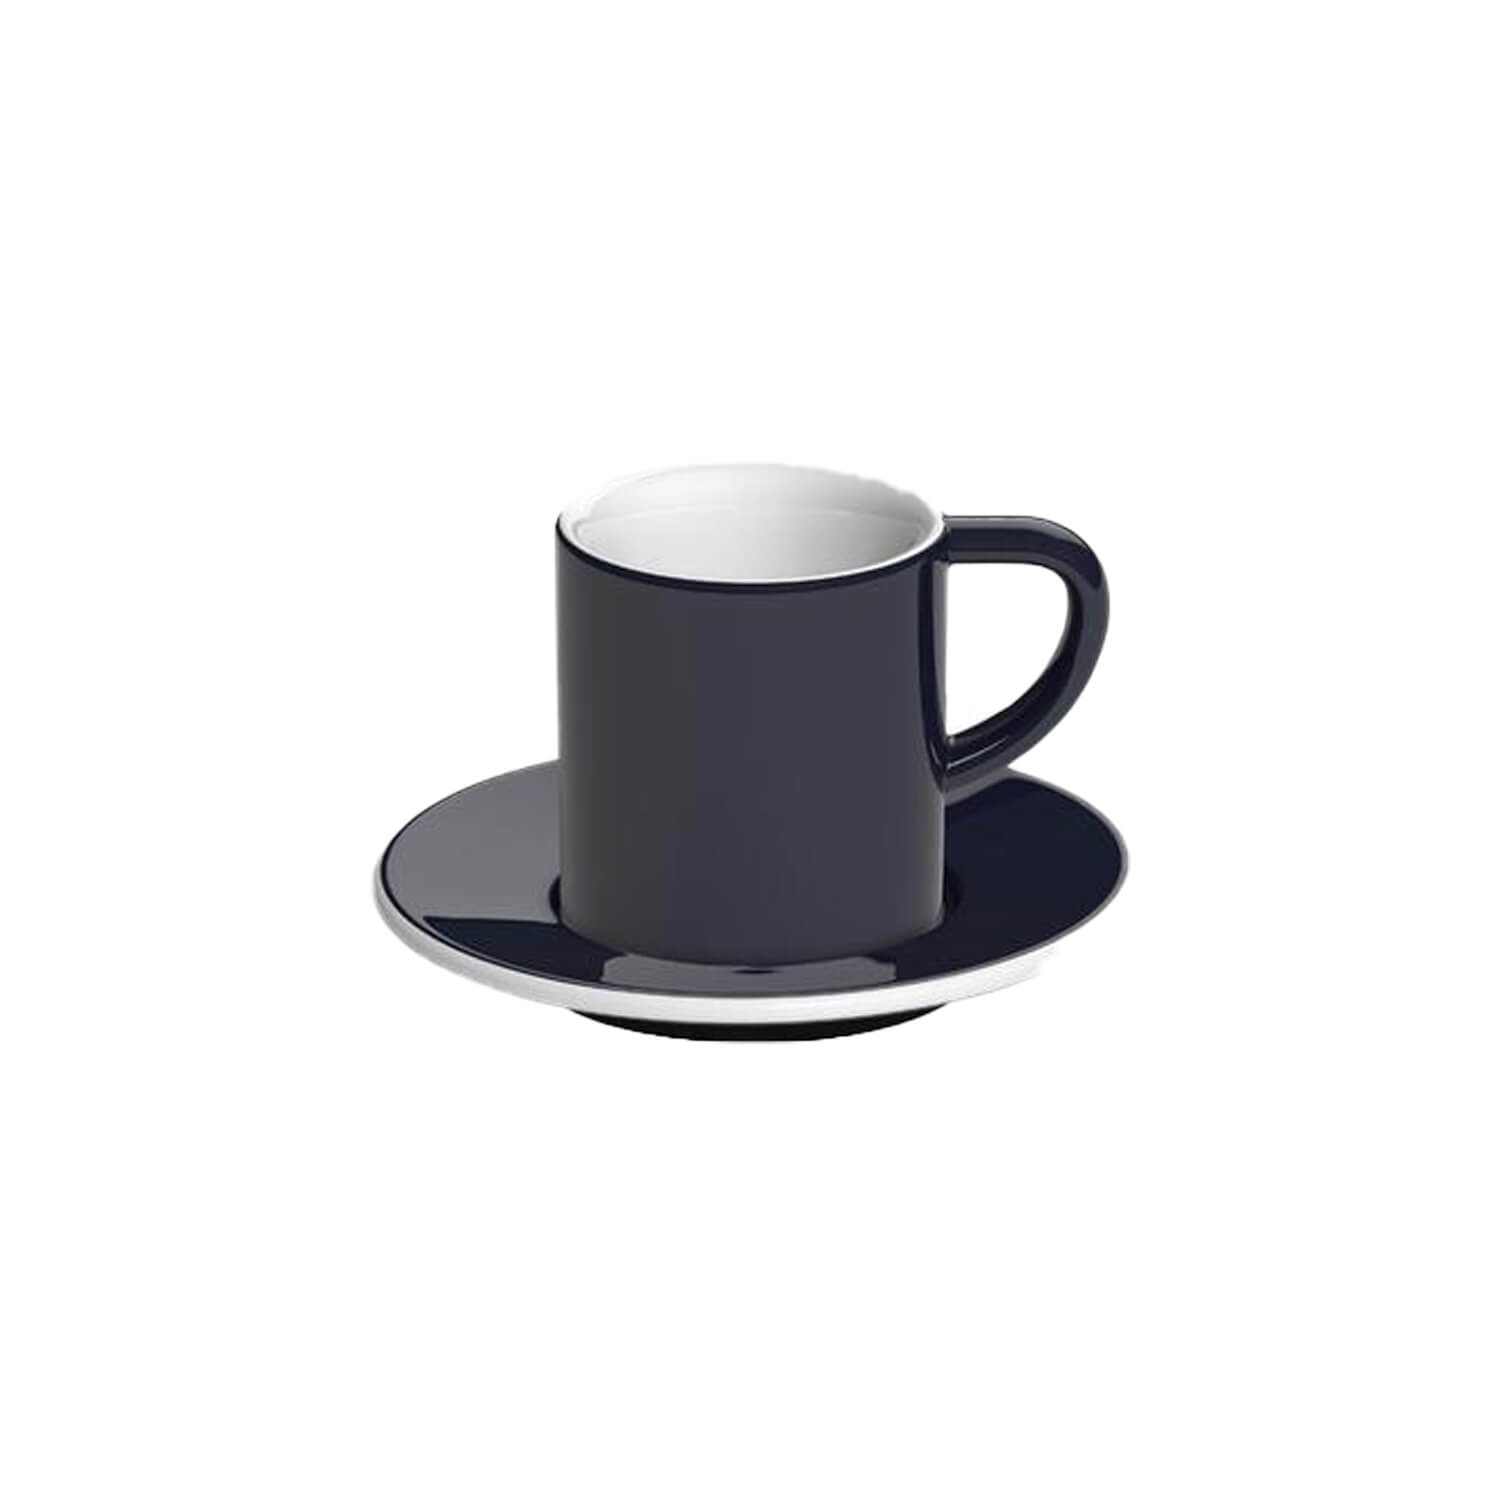 Loveramics - Bond - Espresso cup